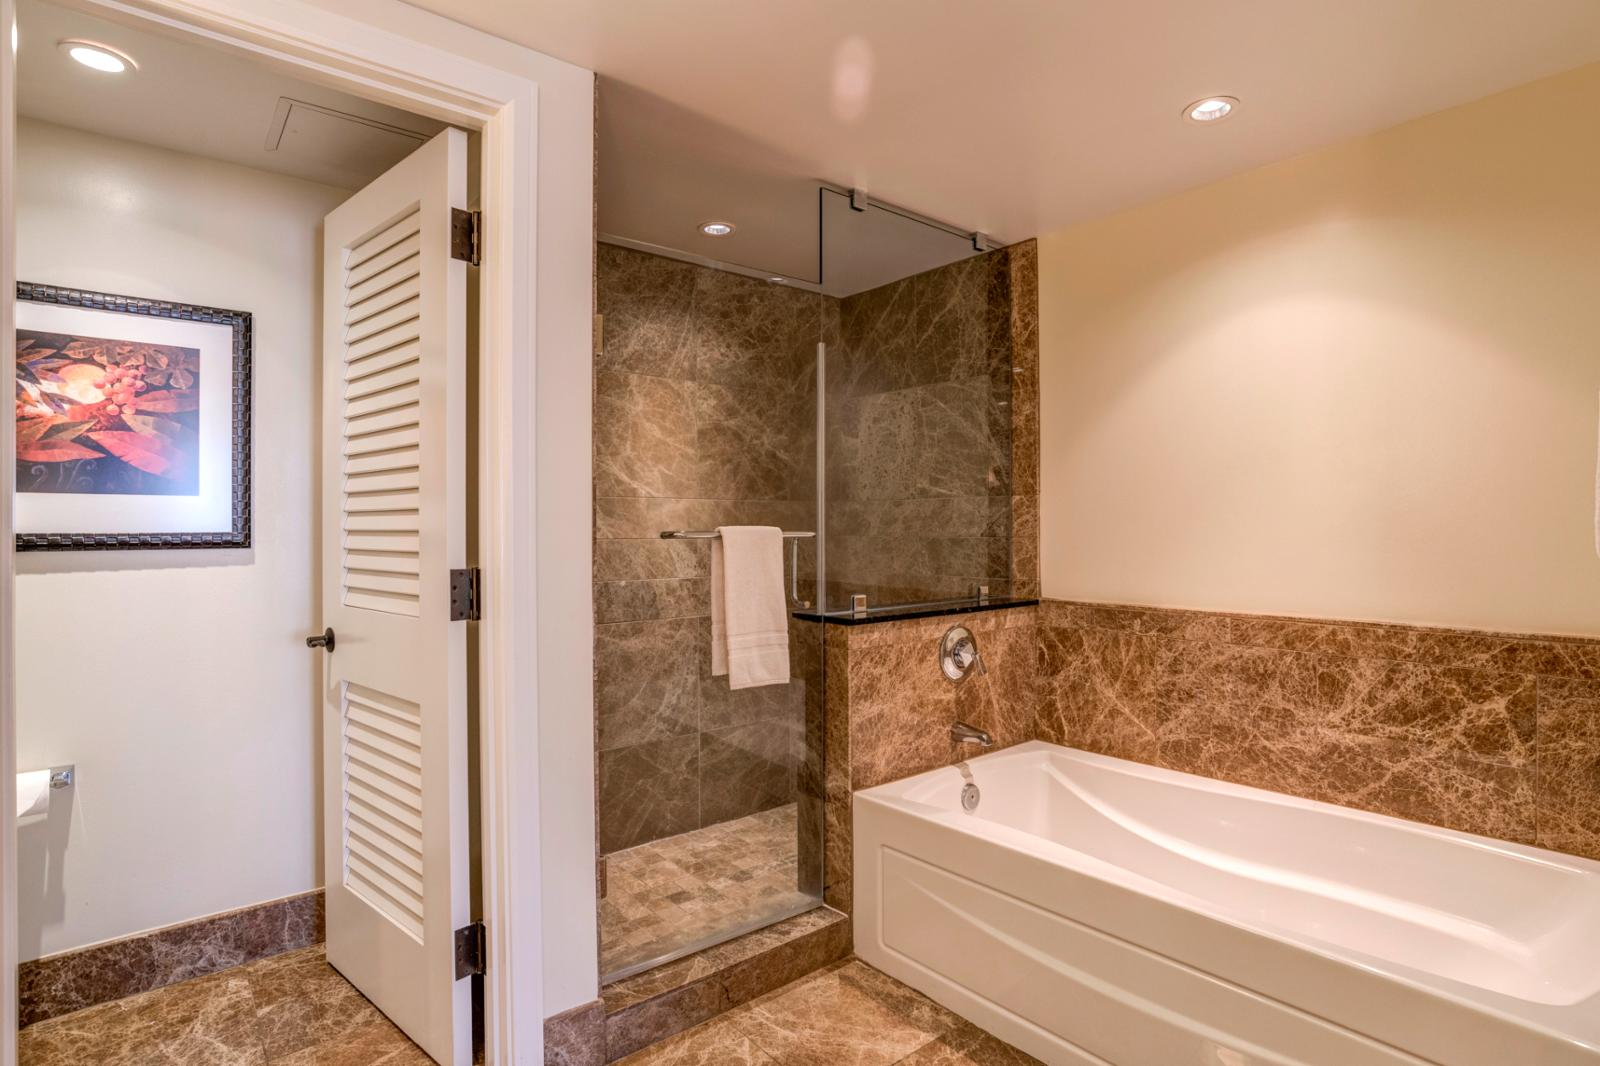 Oversized layout with glass enclosed shower and tub combination